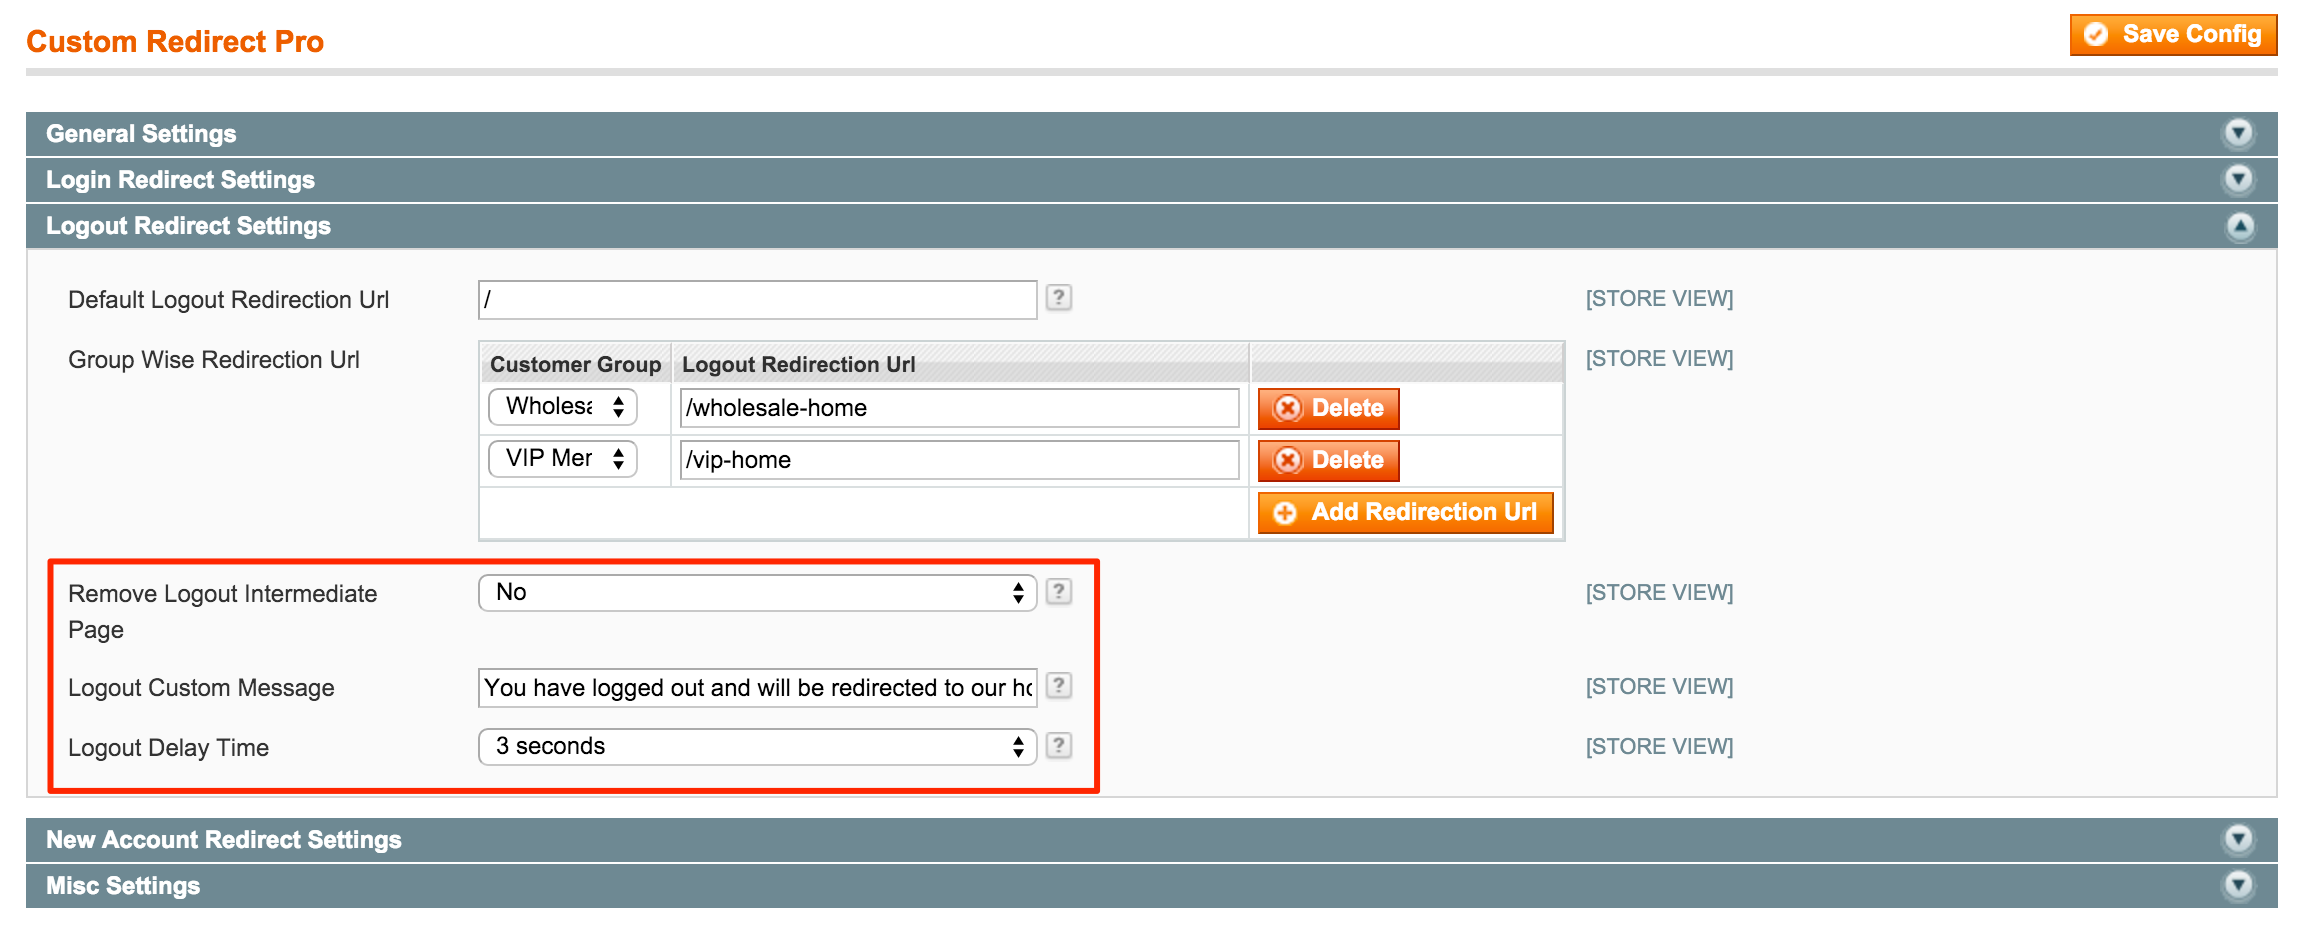 Customer Logout Redirect Settings